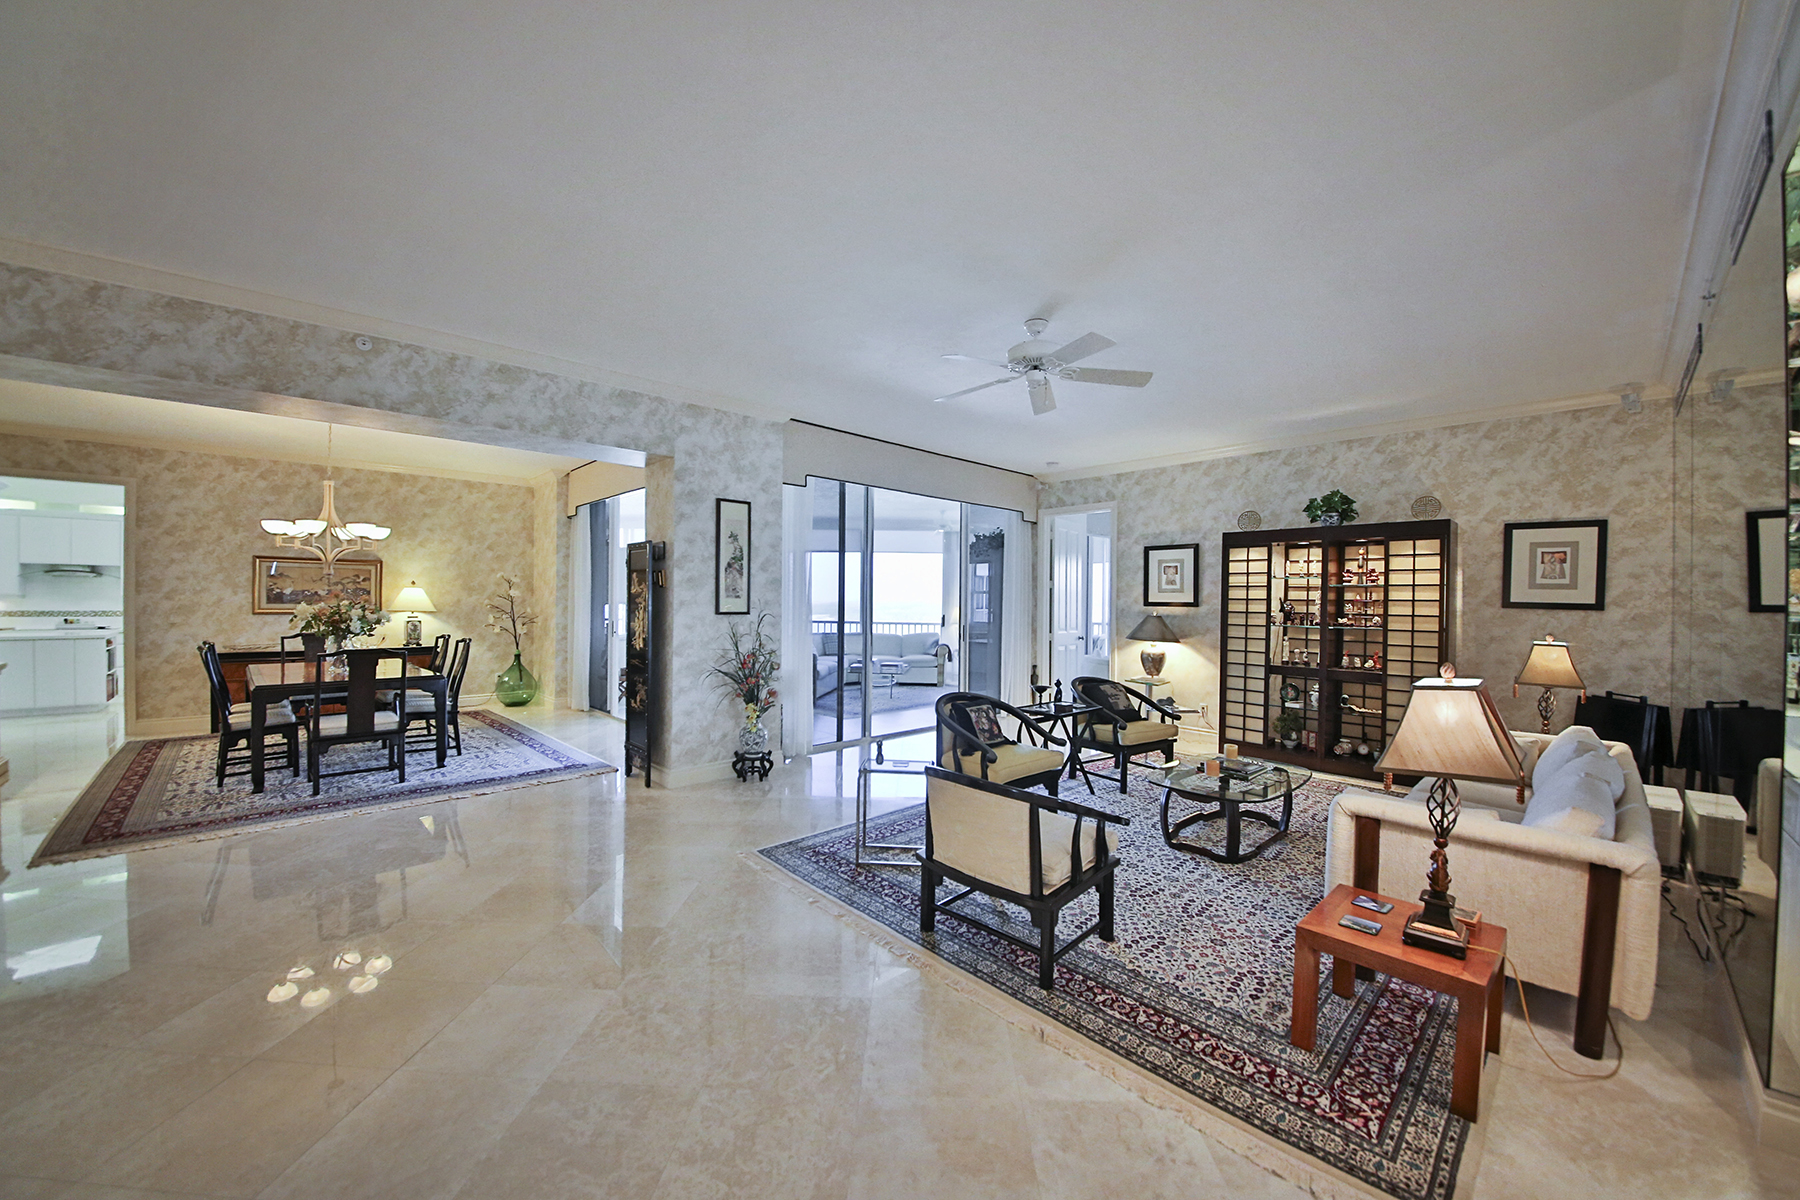 Condominium for Sale at HIDEAWAY BEACH 4000 Royal Marco Way 927 Marco Island, Florida, 34145 United States